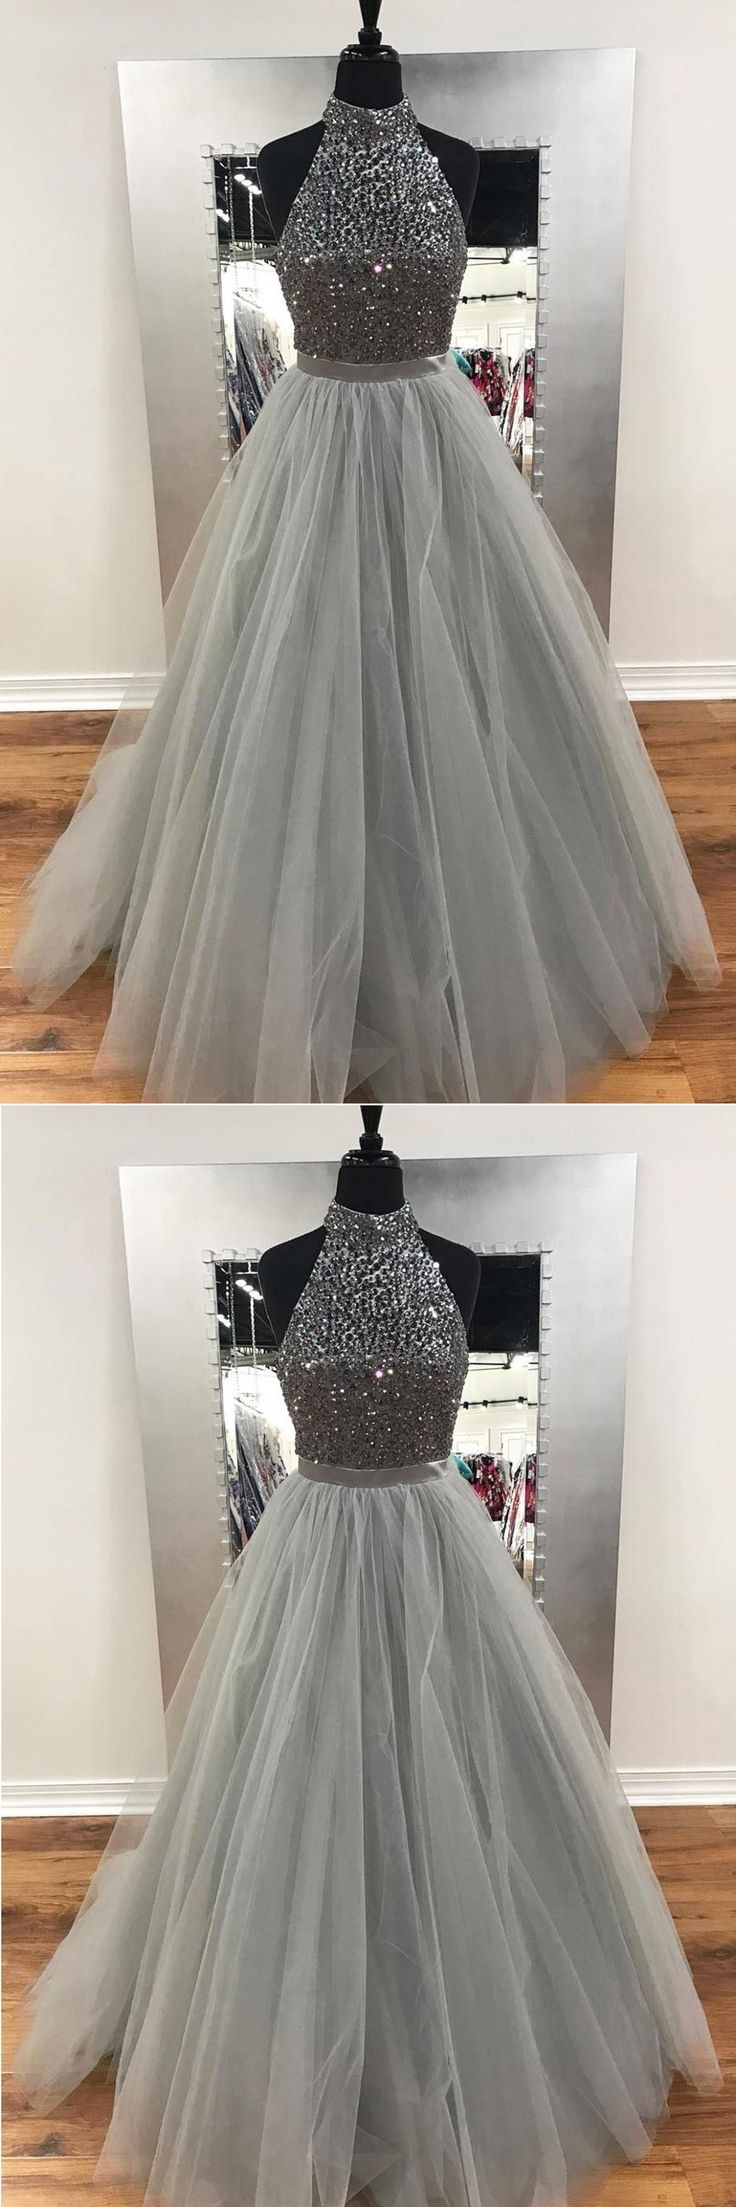 2018 gray tulle long sliver sequins prom dresses, long evening dress #longpromdresses